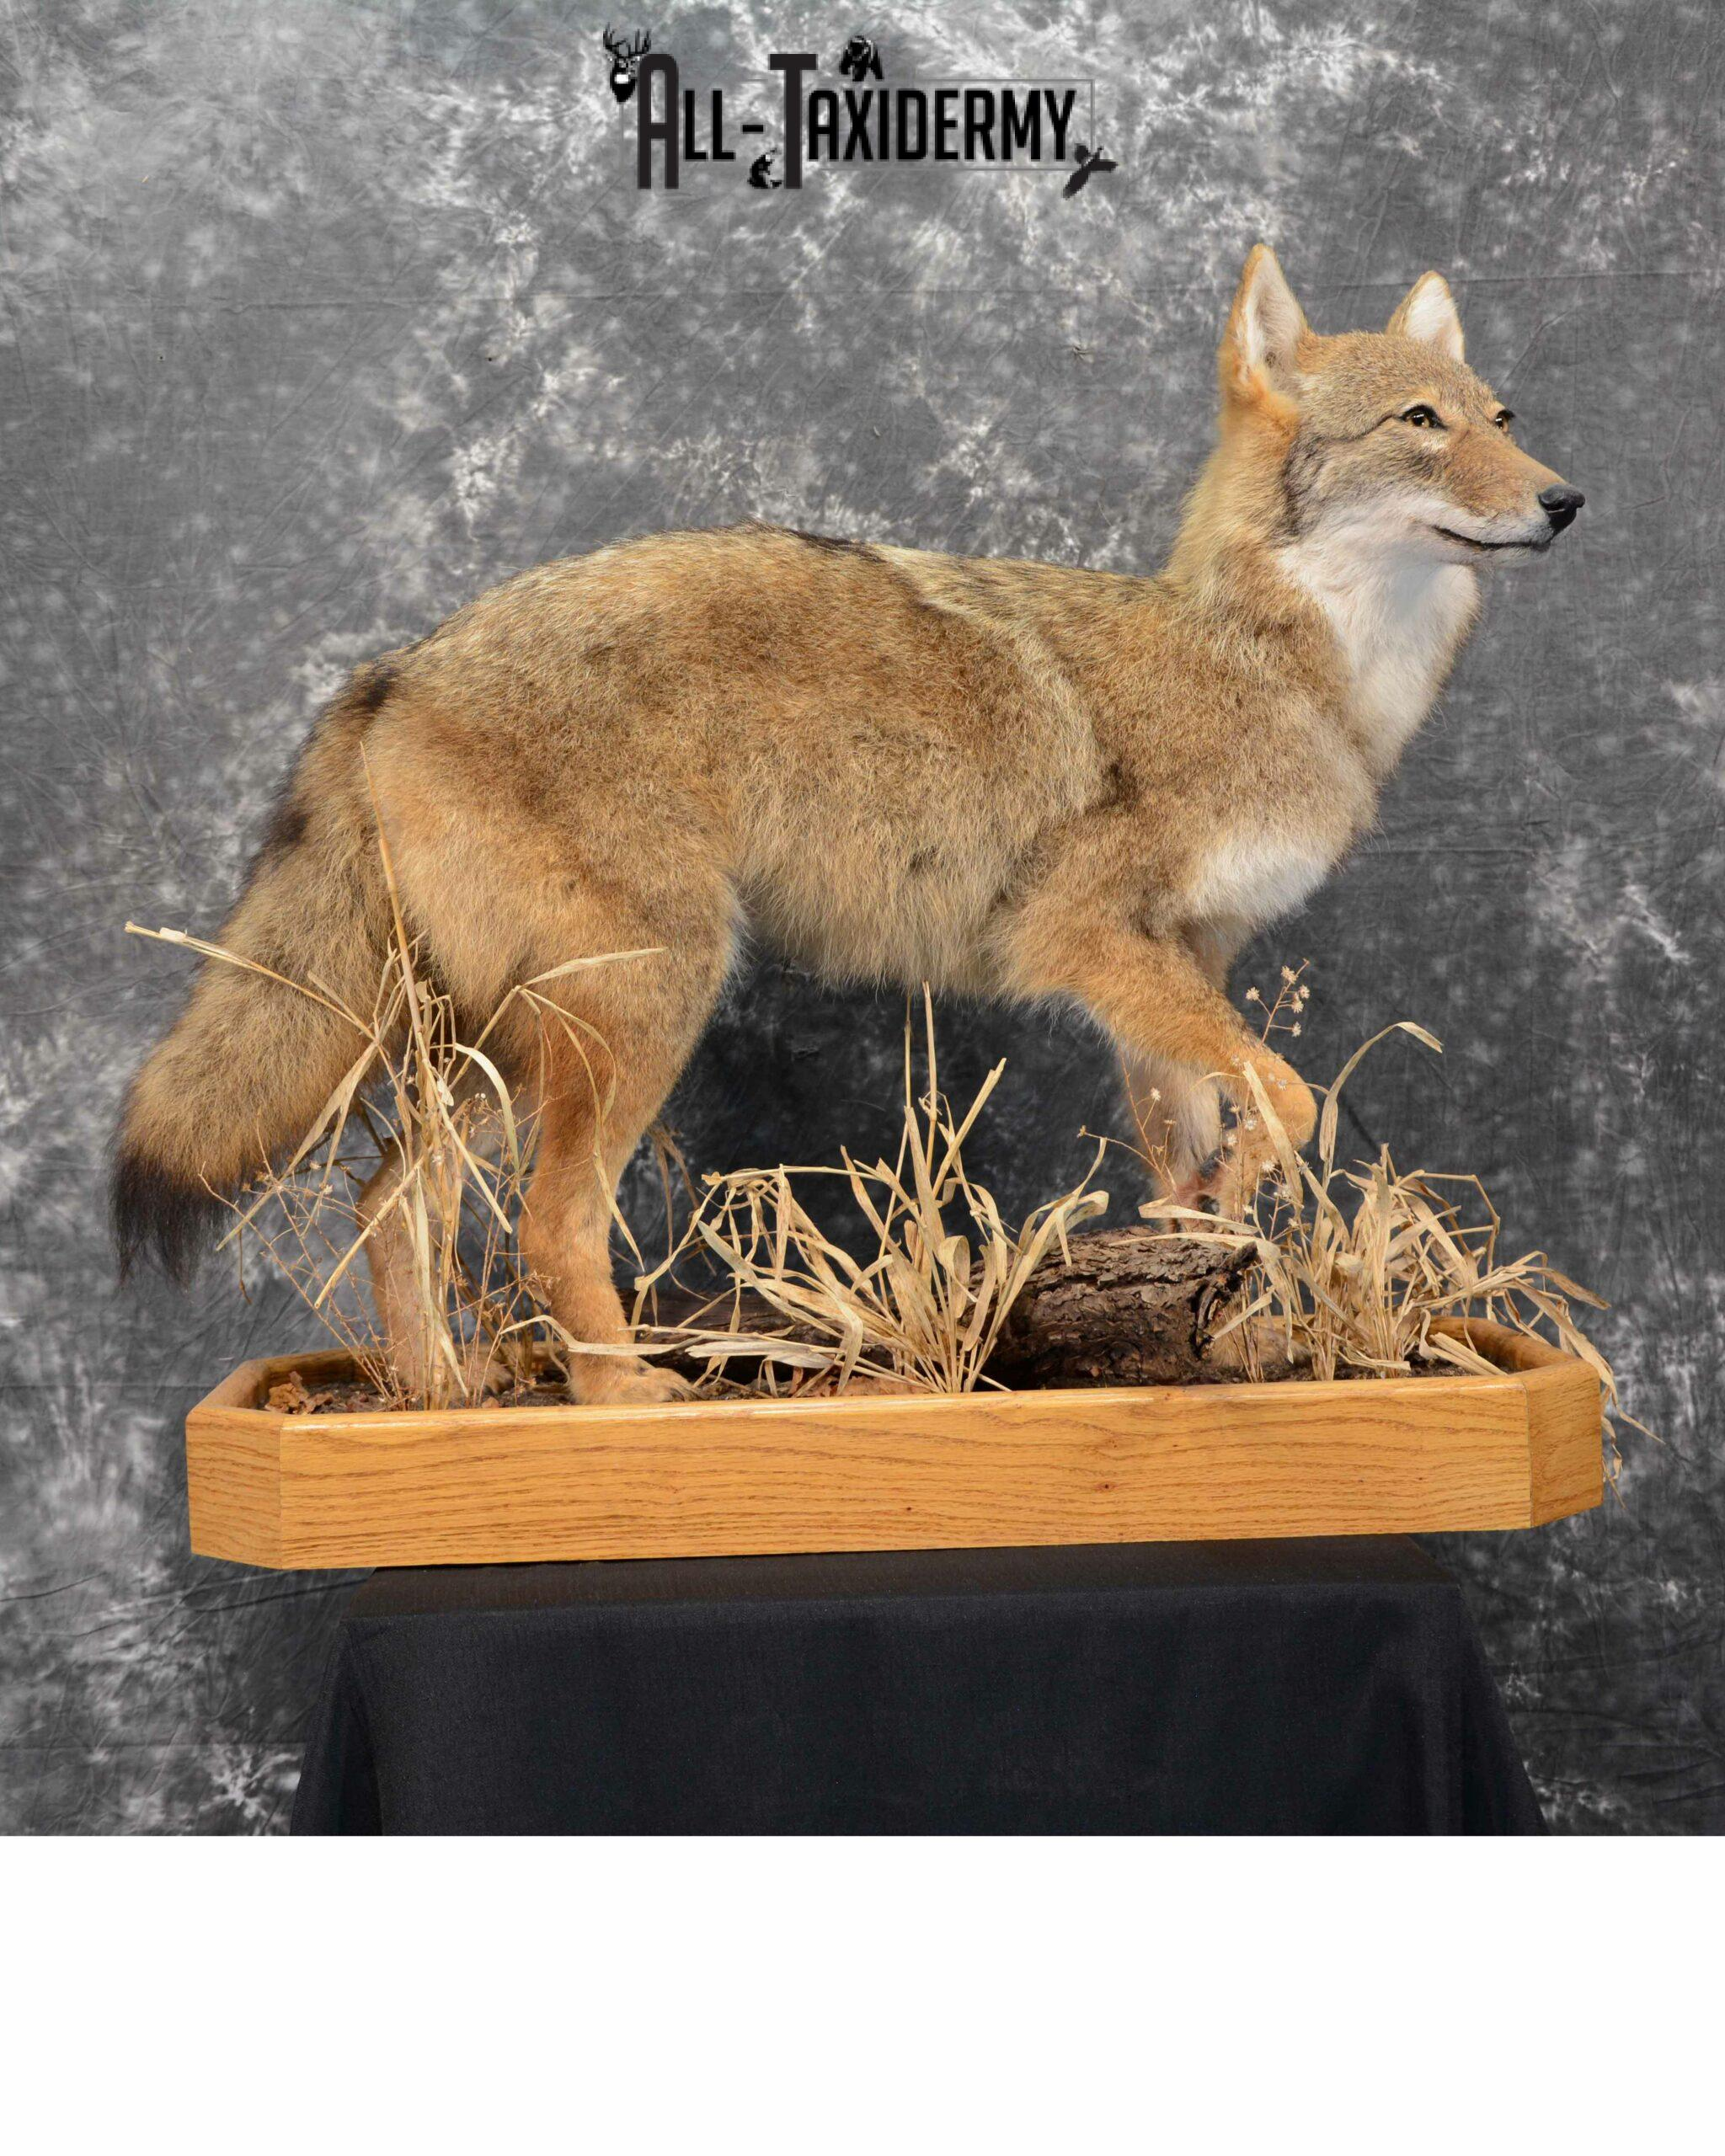 Coyote Taxidermy for sale SKU 1114